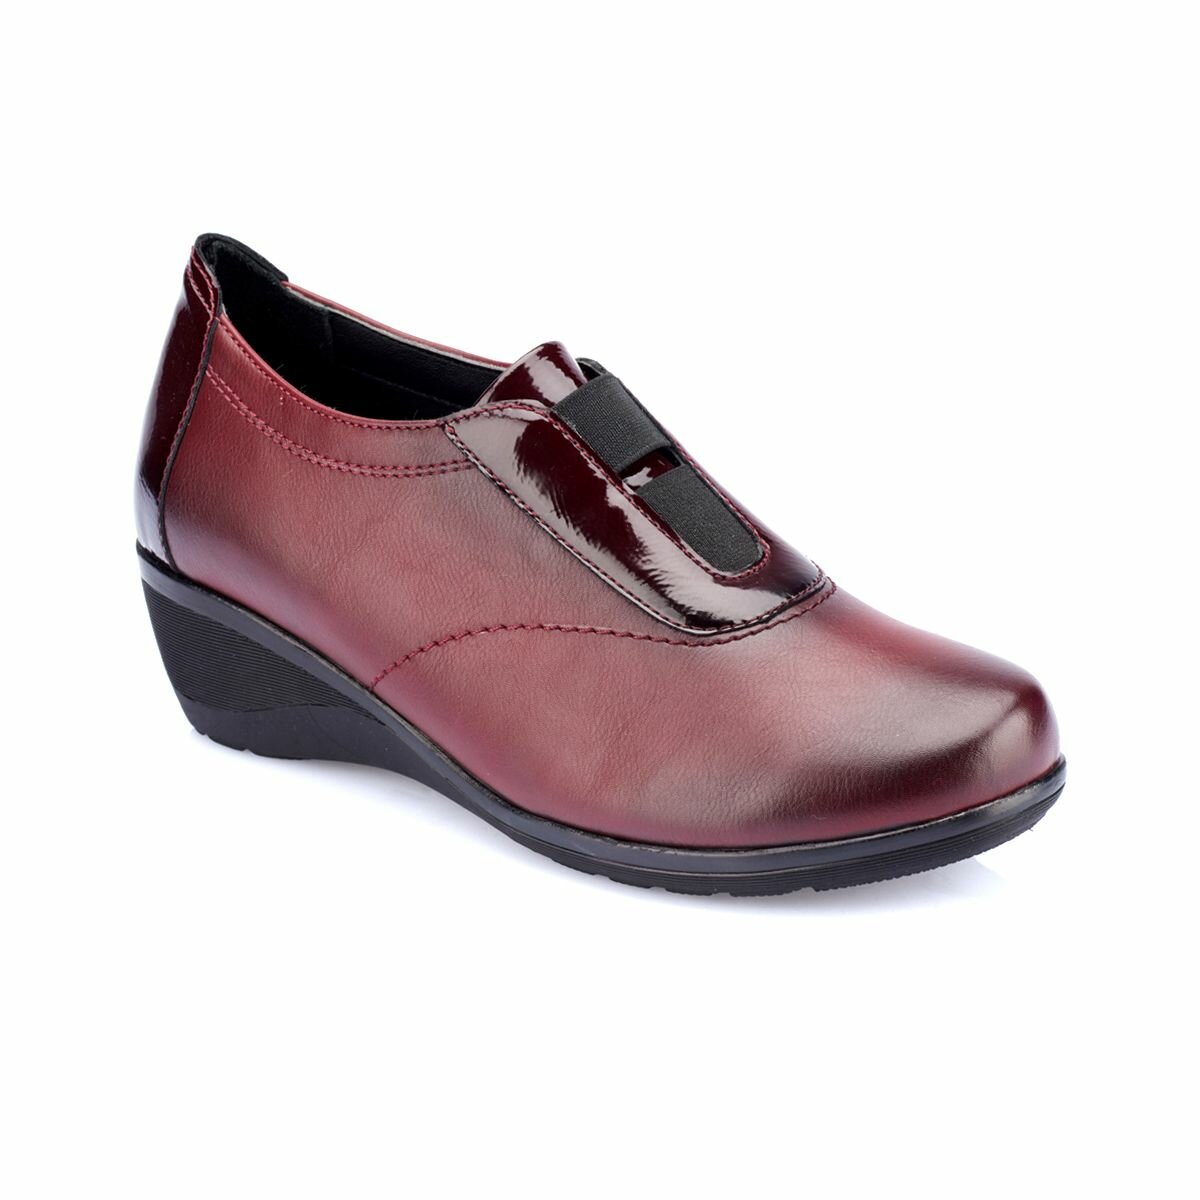 FLO 82.150082RZ Burgundy Women 'S Shoes Polaris